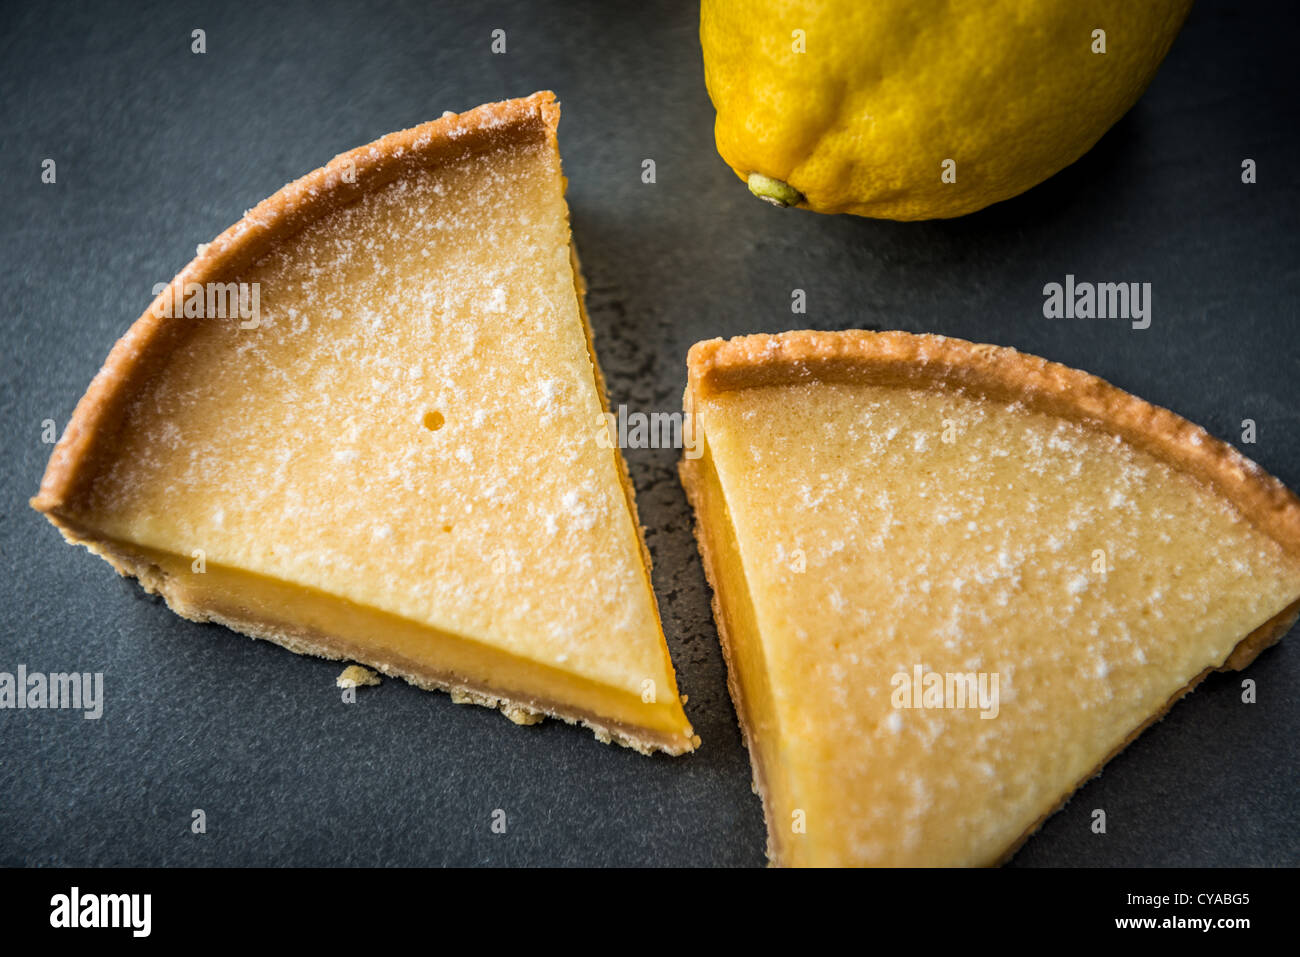 Lemon tart dessert with biscuit base on slate surface with lemons in background shot from above - Stock Image